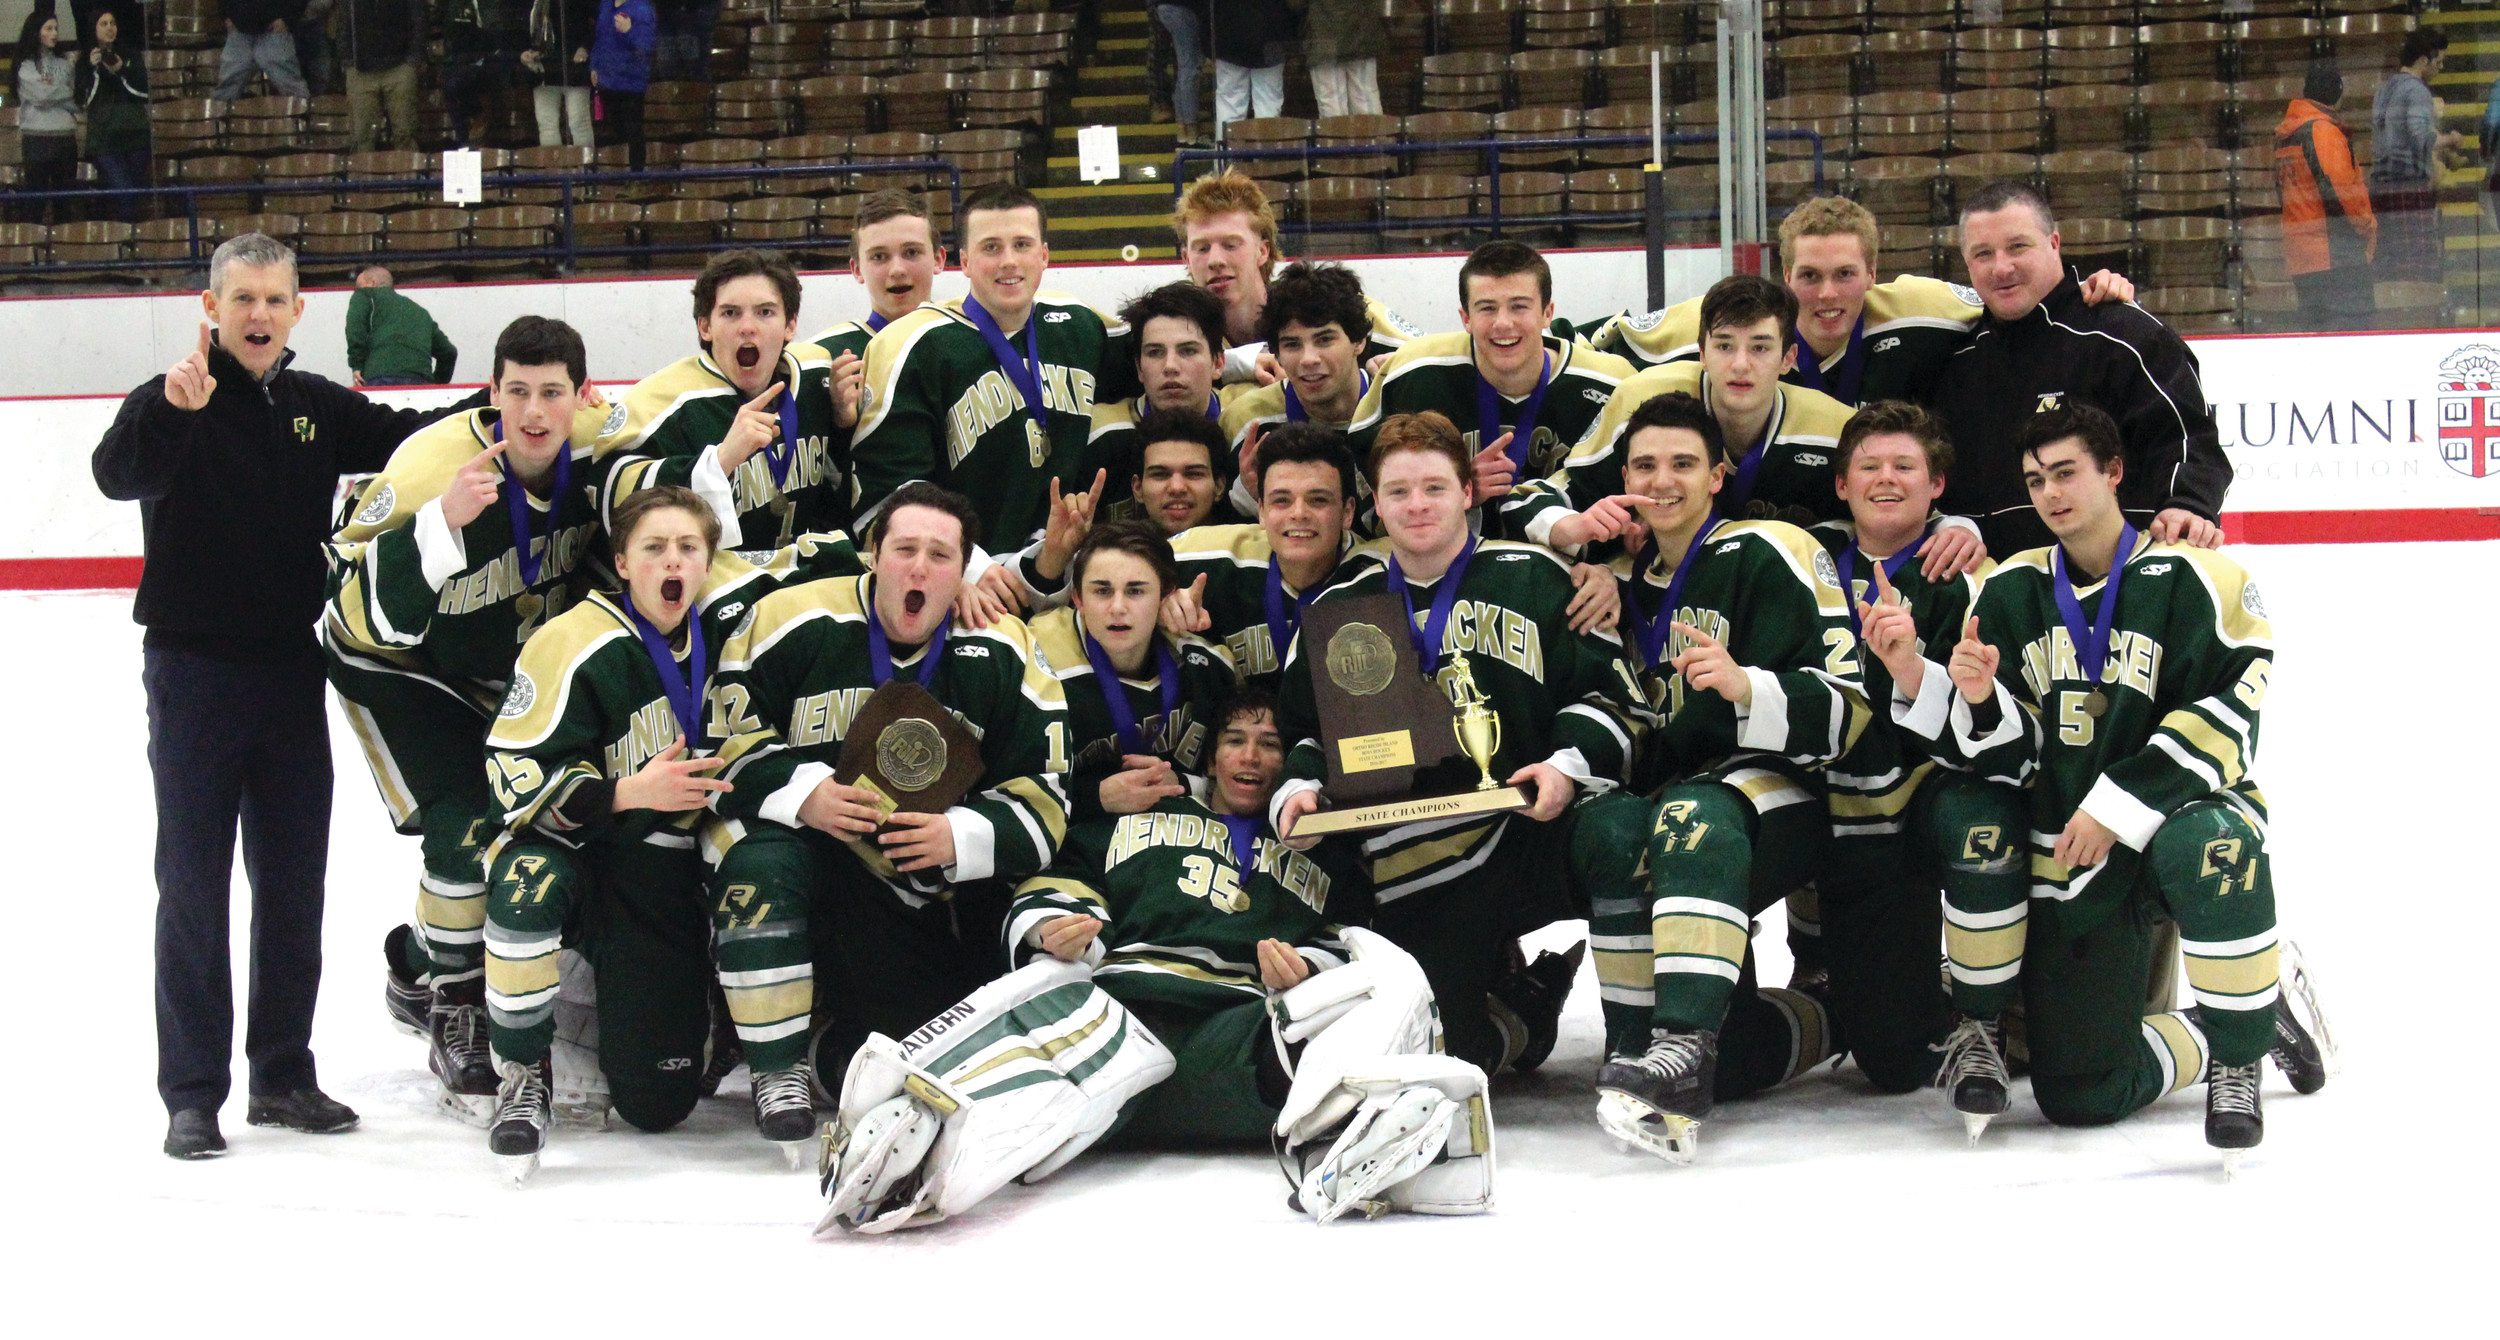 SWEEP: The Hendricken hockey team swept La Salle with 5-4 and 3-1 victories to capture the state championship.